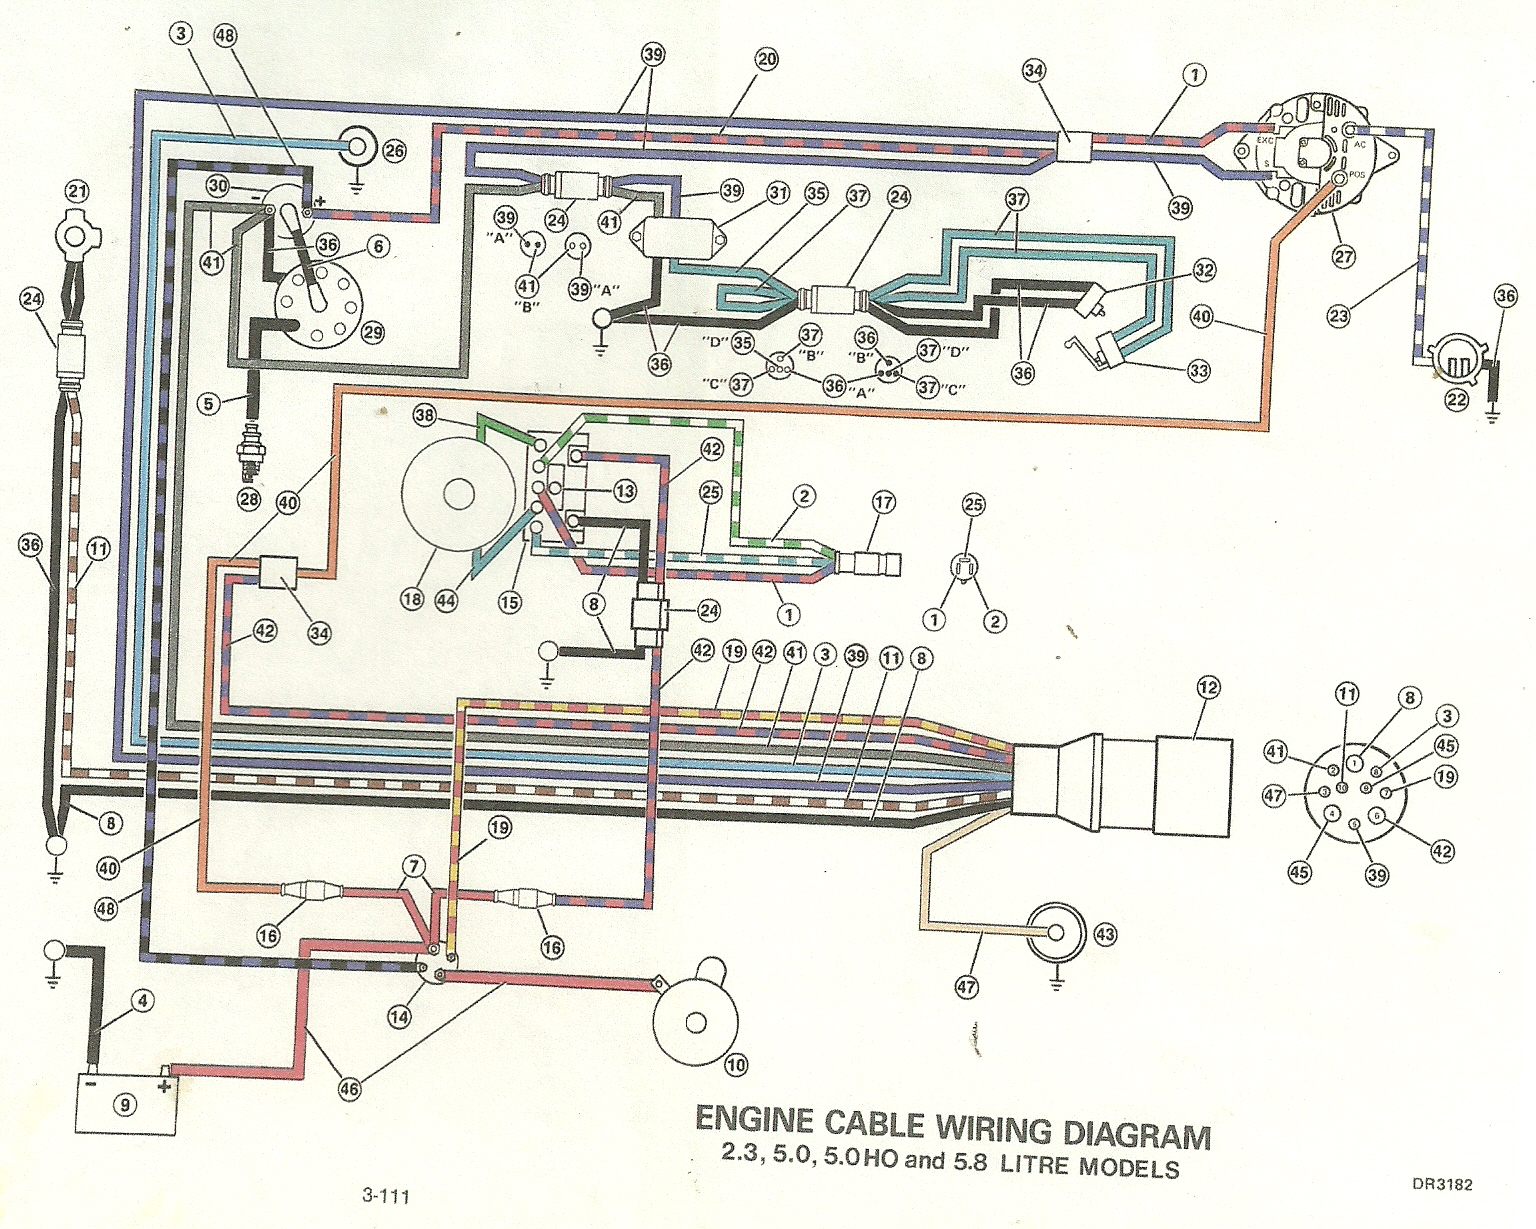 Nitro Engine Schematic in addition 3465 z520c besides Timberwolf Wiring Diagram as well 414331234443664713 further Paccar Mx 11 Fuel Diagram. on tracker outboard wiring diagram